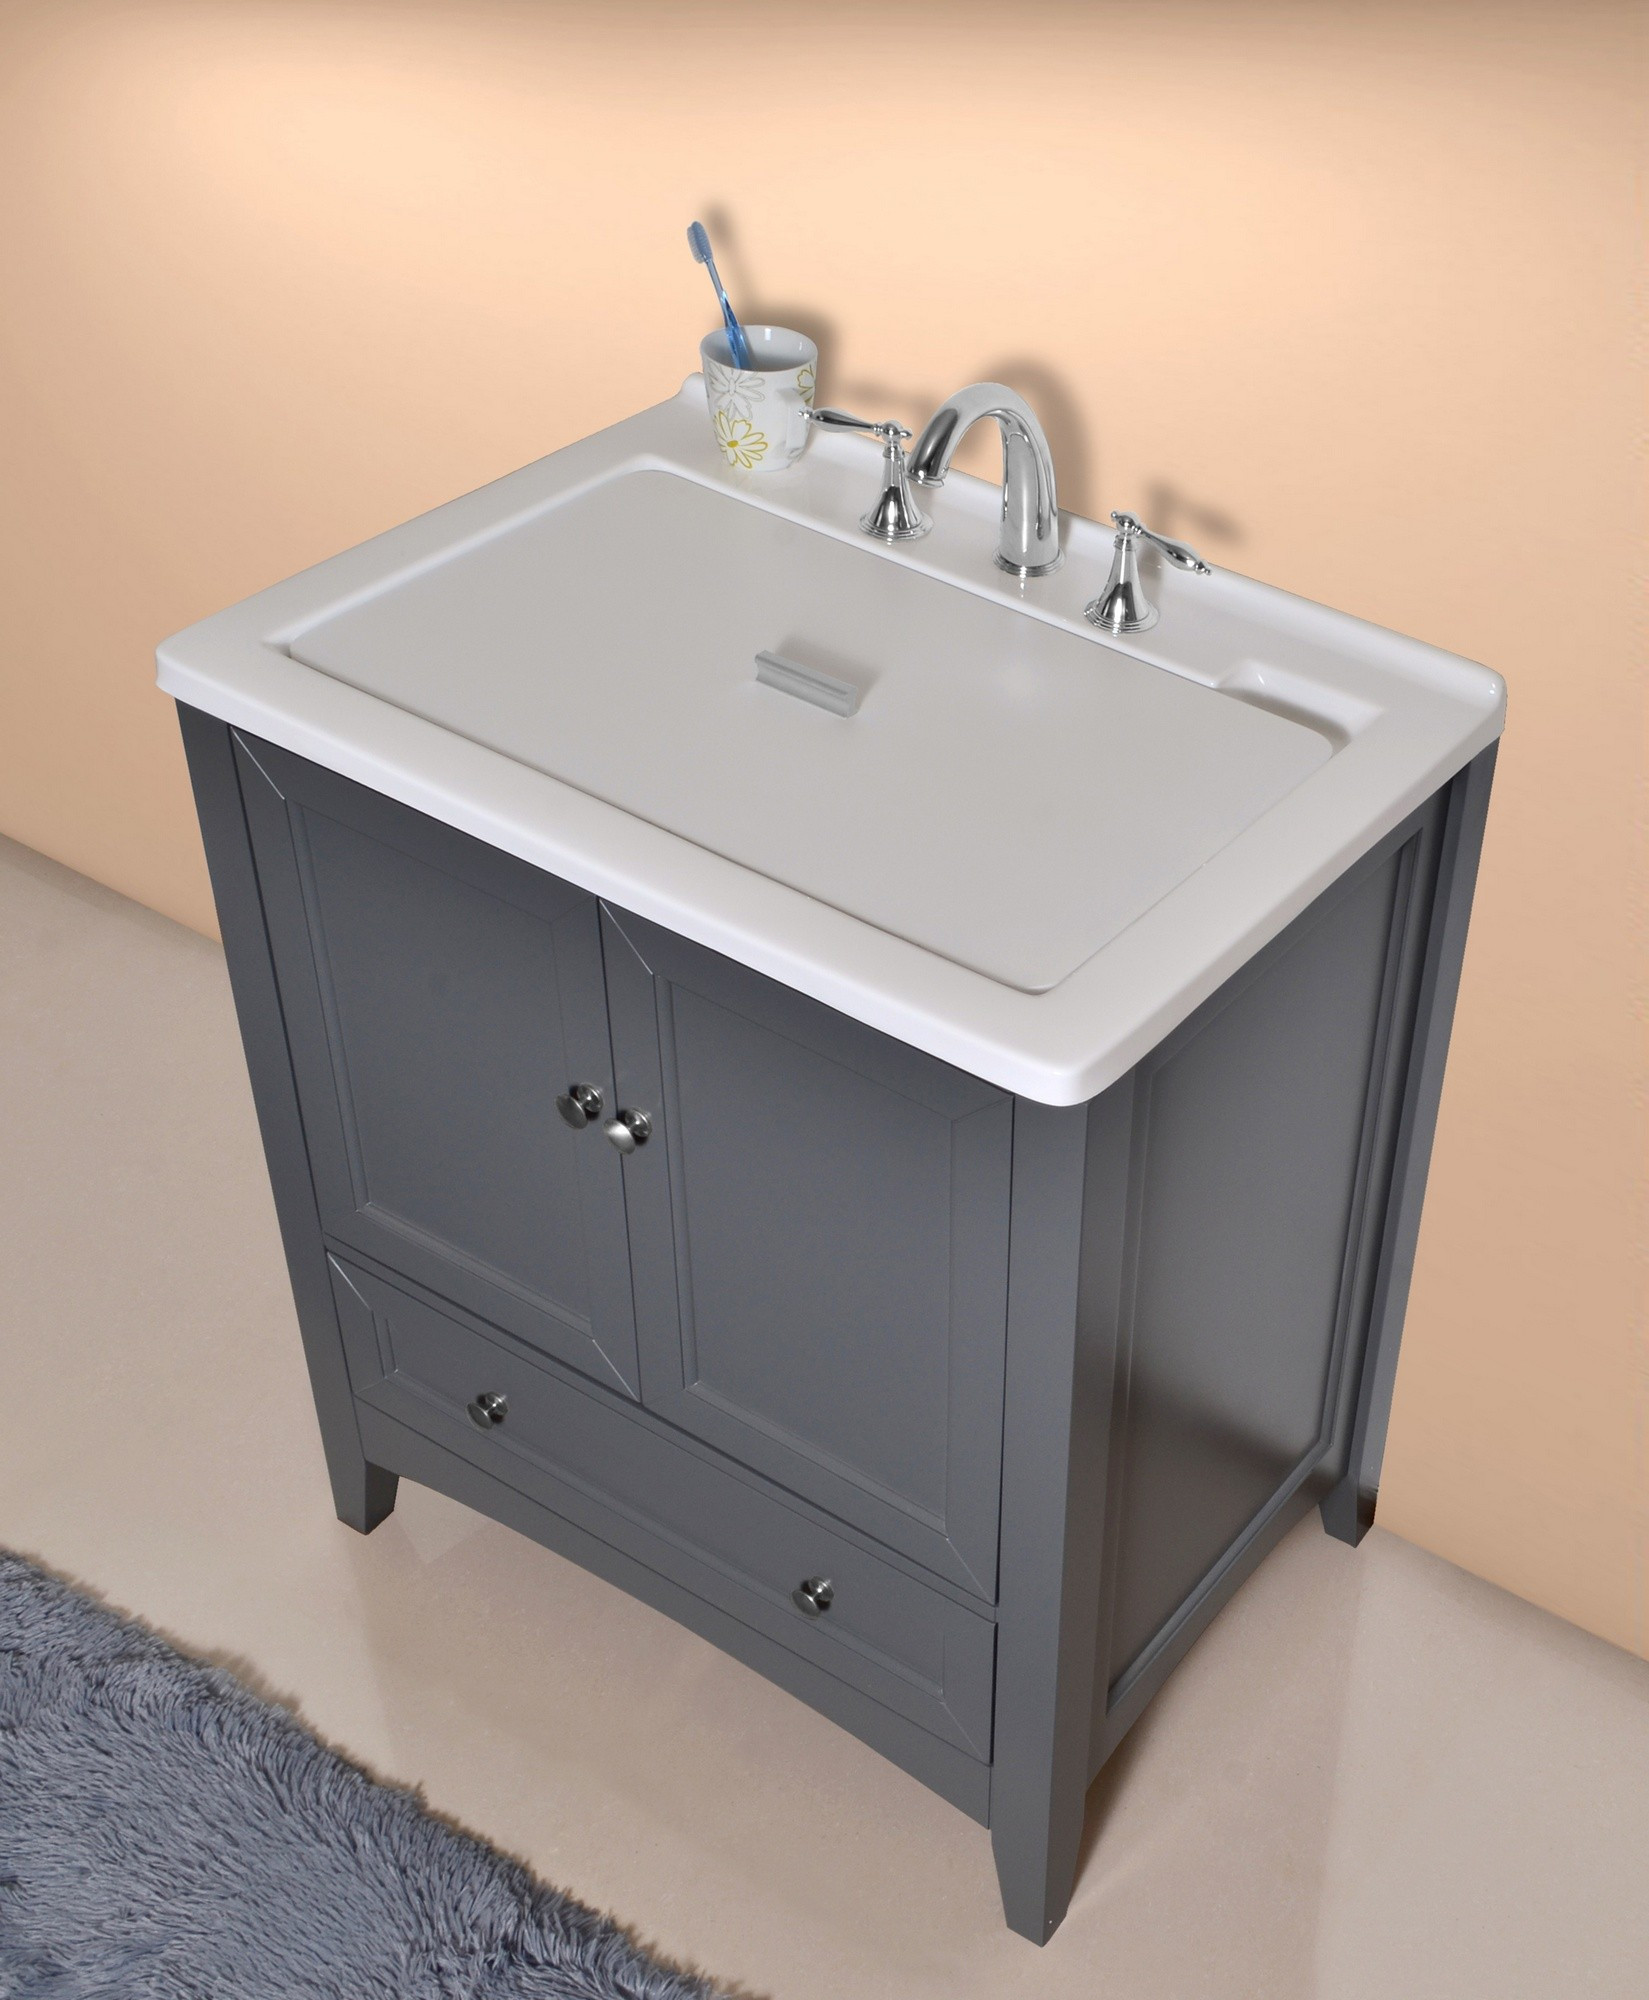 Best ideas about Laundry Room Utility Sink . Save or Pin Stufurhome GM Y01G Manhattan Grey Laundry Utility Sink Now.